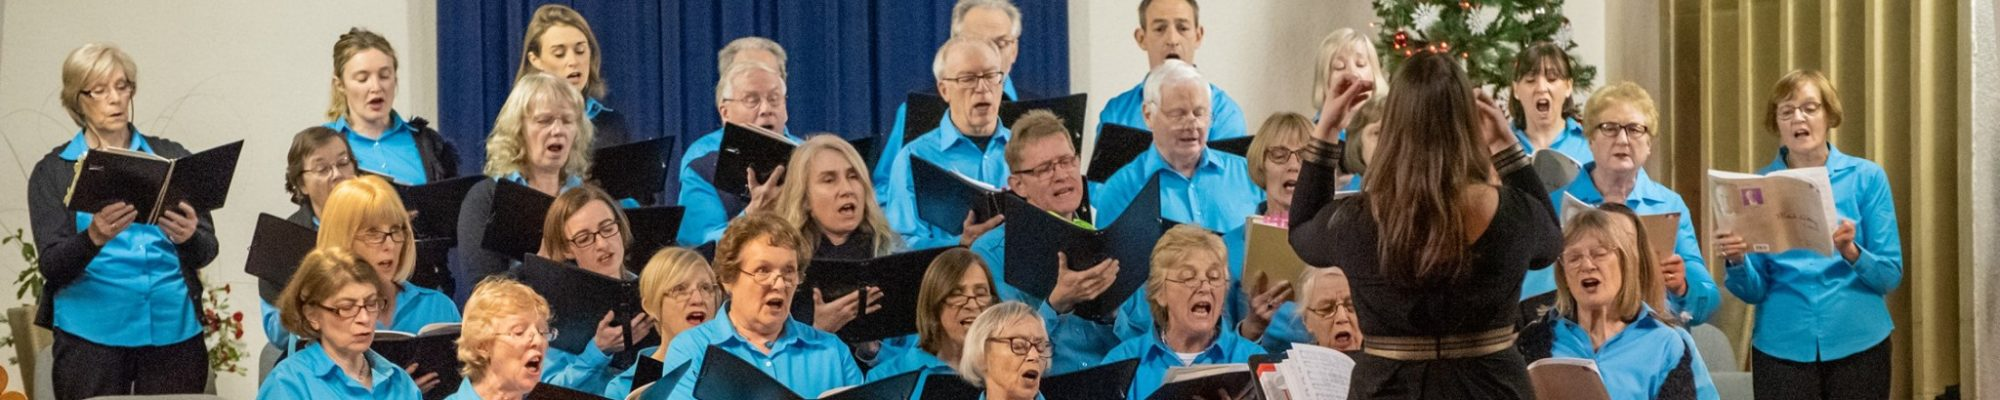 Clevedon Choral (Society)